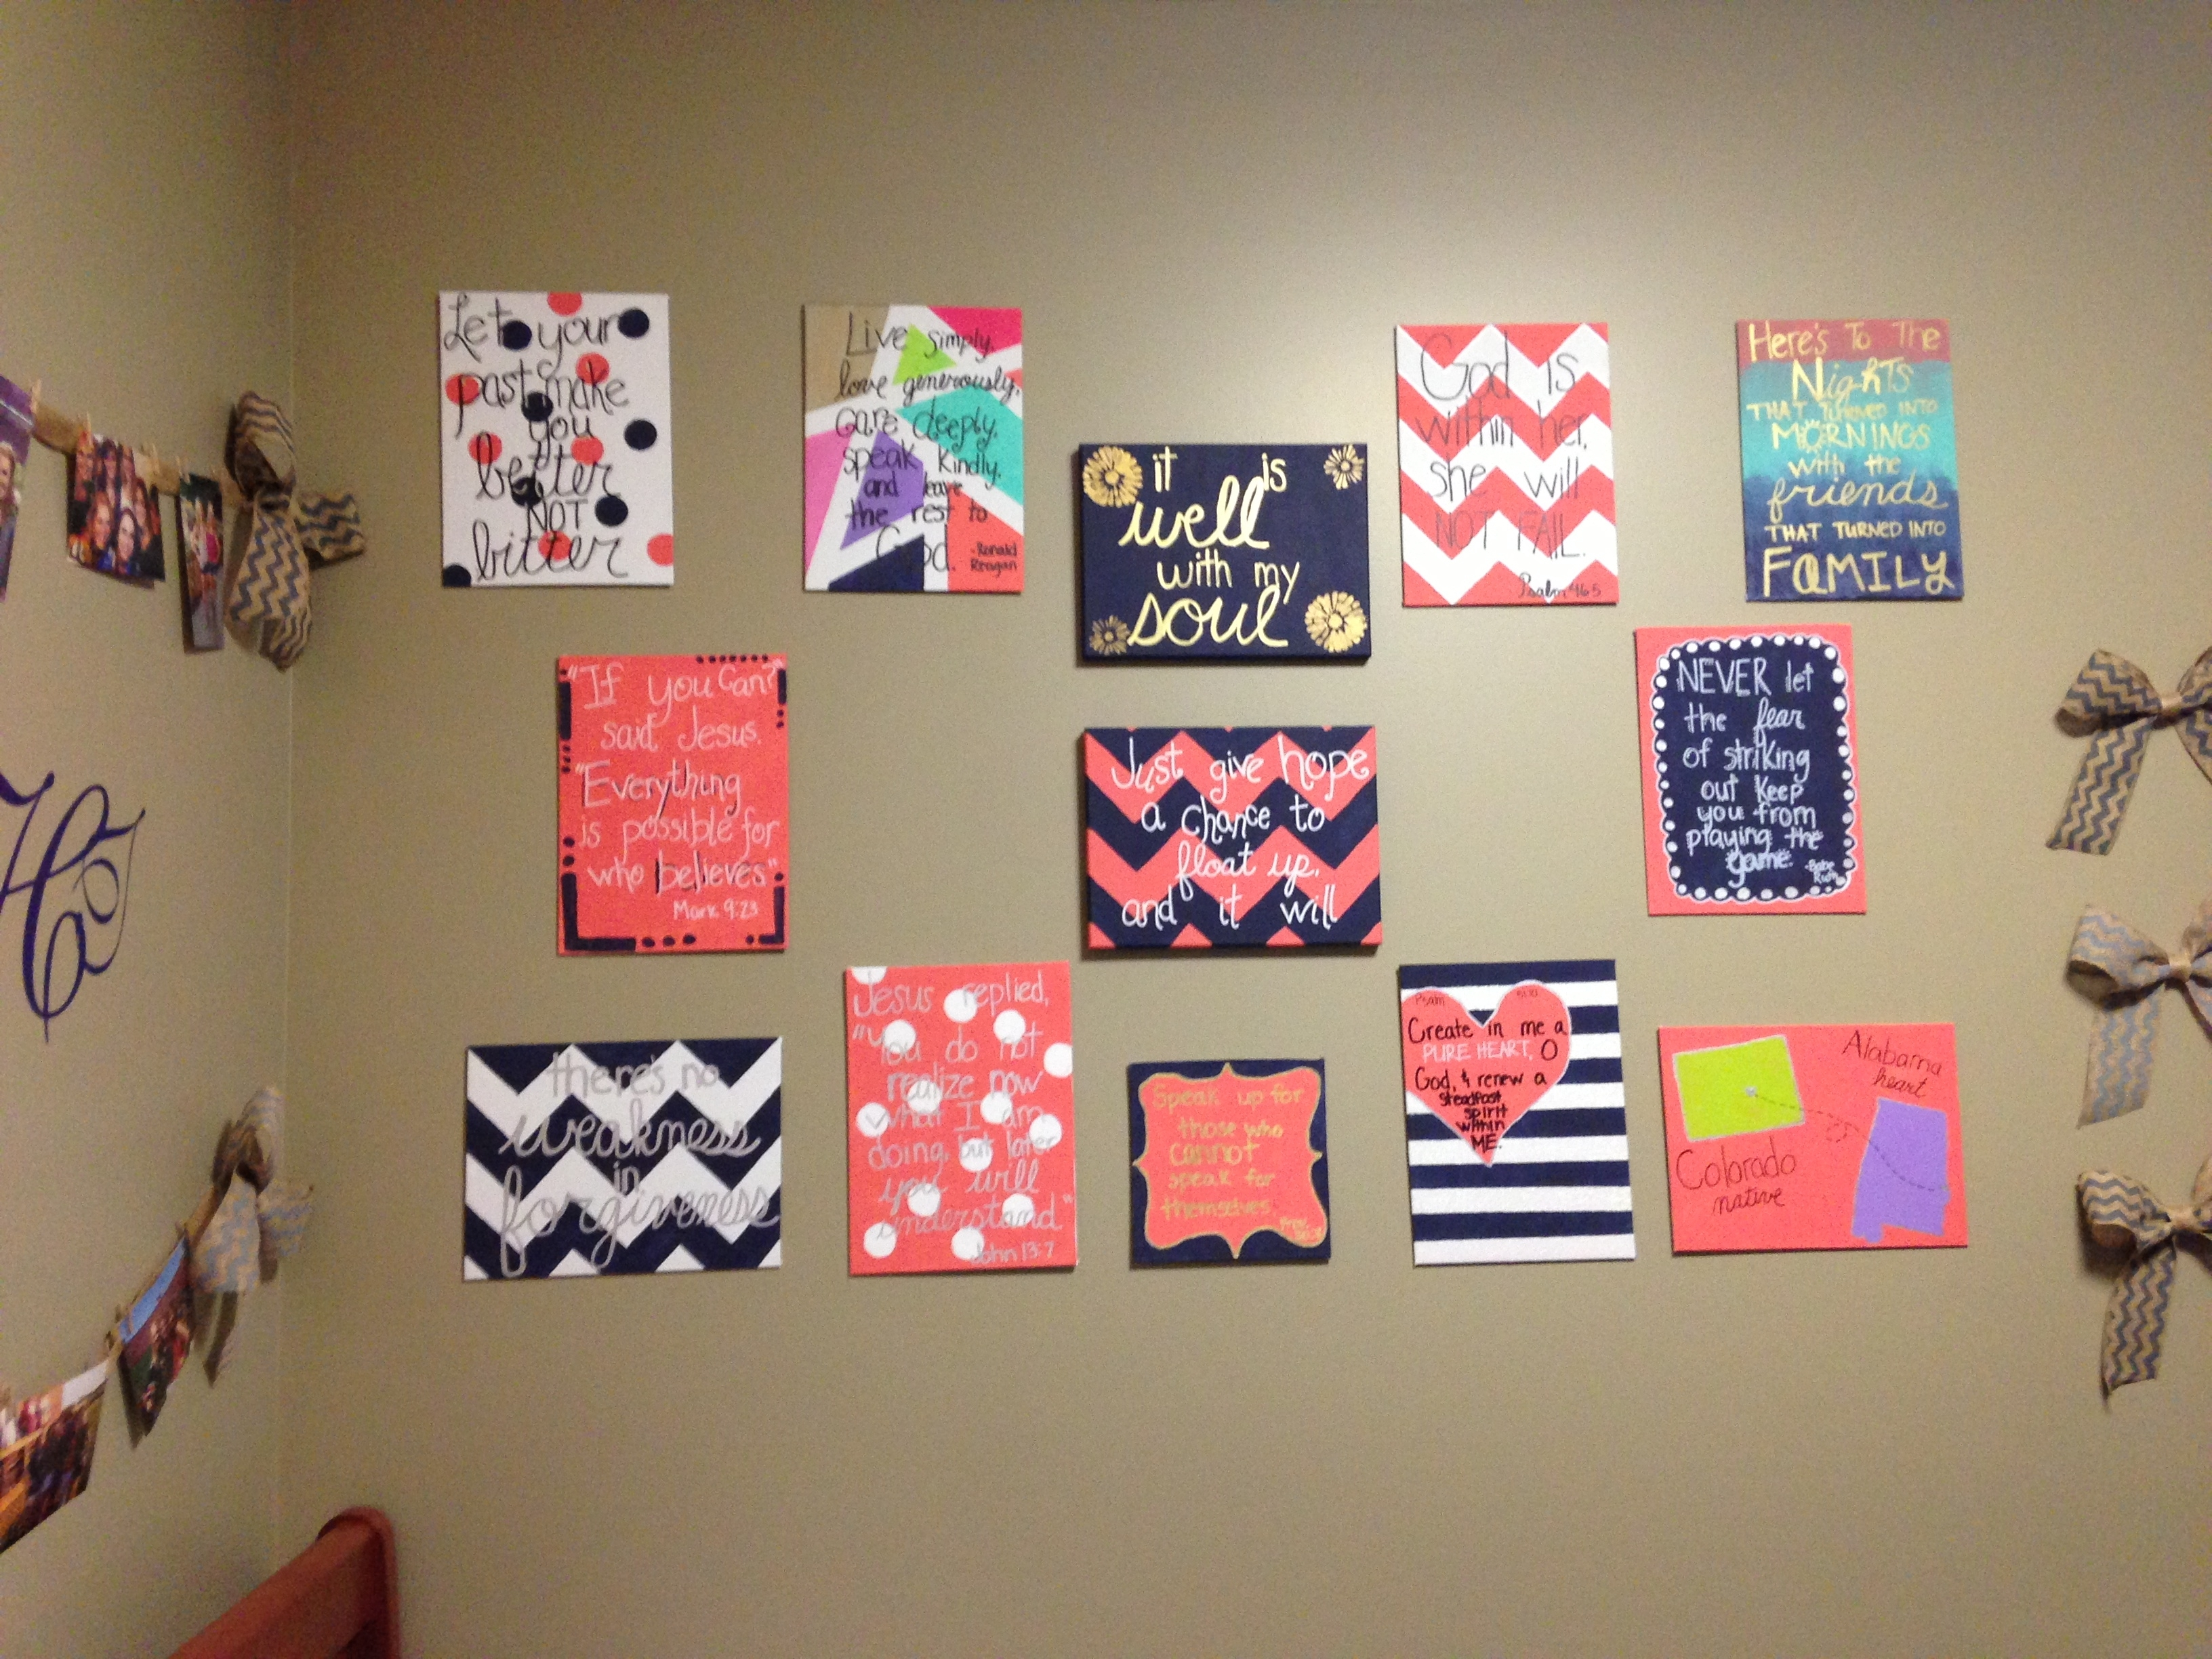 Dorm Room Decor. (View 8 of 15)